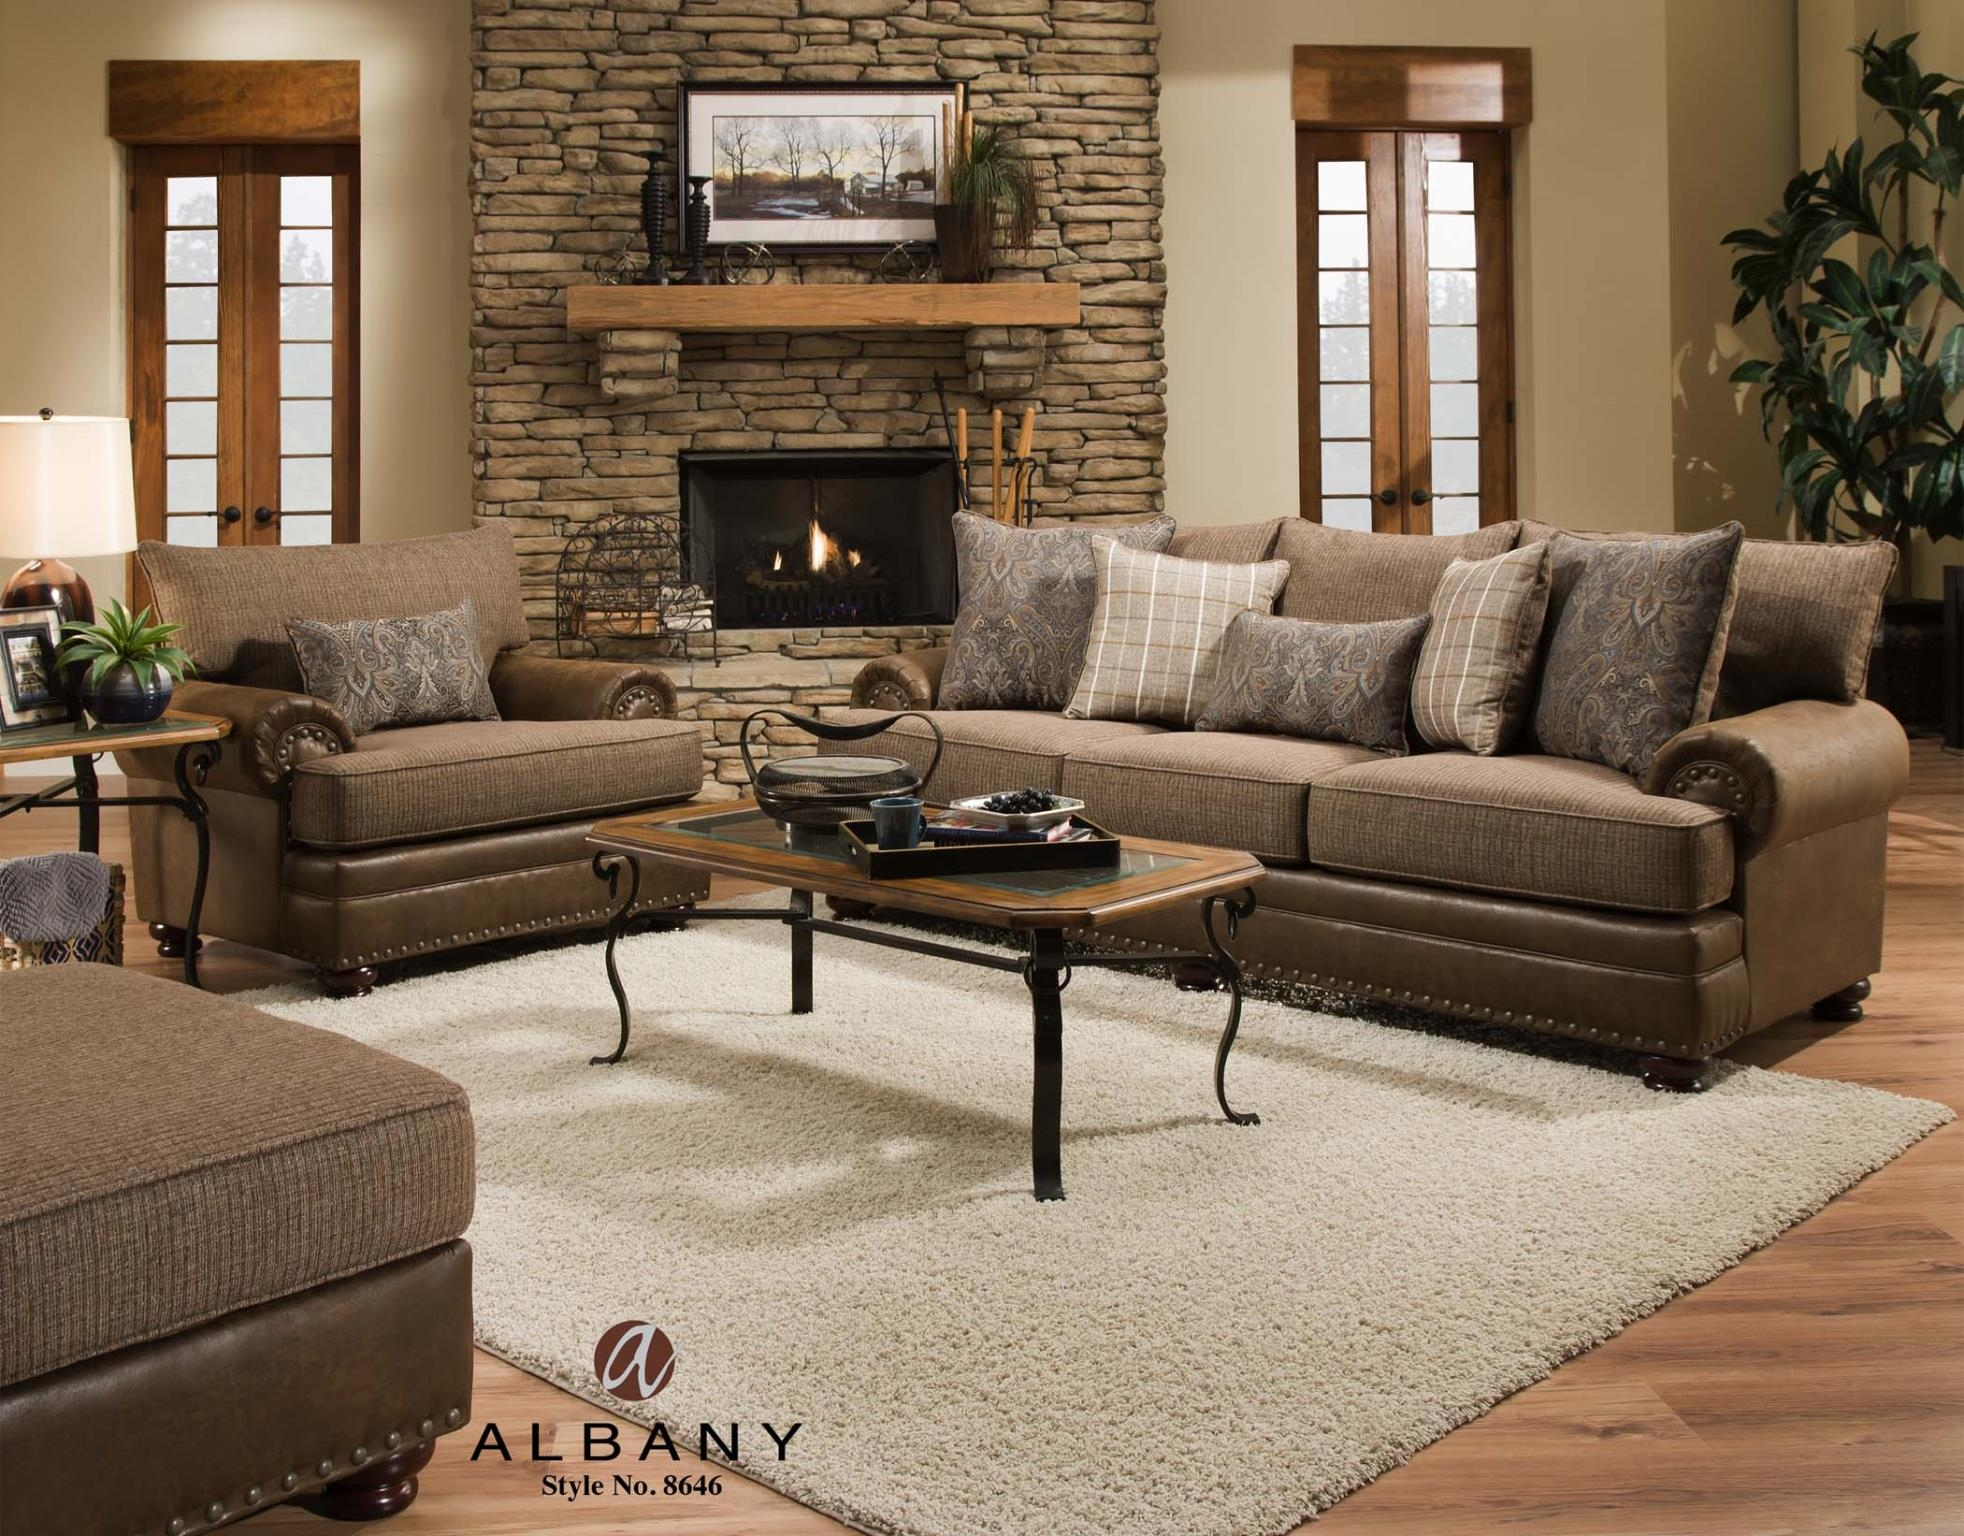 Fresh allison recliner sectional sofa by albany industries for Allison recliner sectional sofa by albany industries